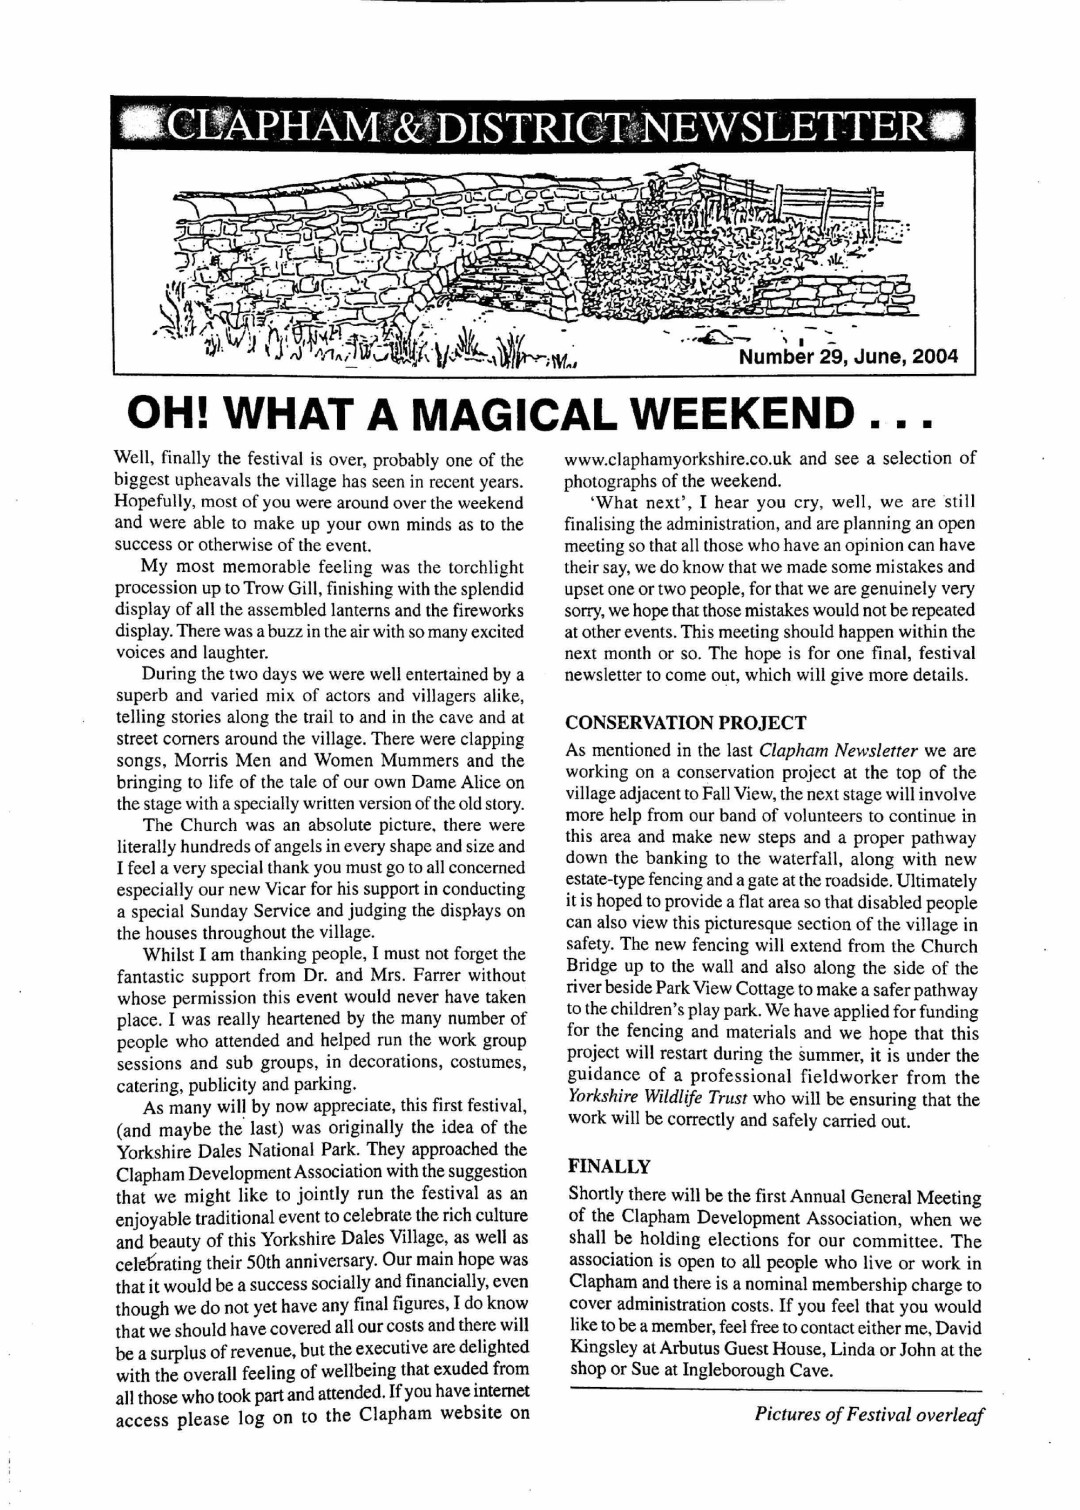 Clapham_Newsletter_No29_June_2004-1